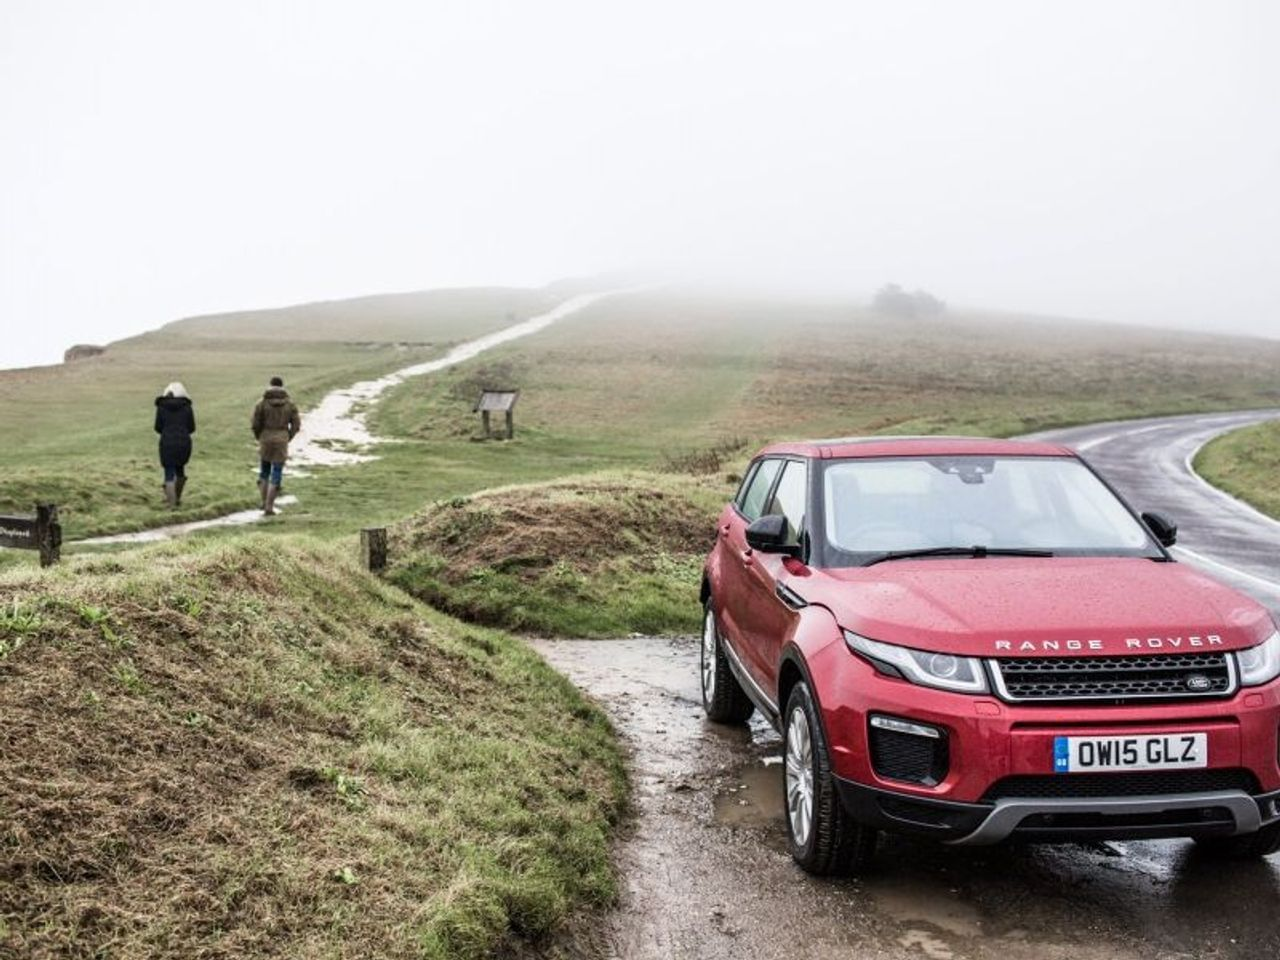 Atmosphere Faces provide cast for LandRover Hibernot Campaign